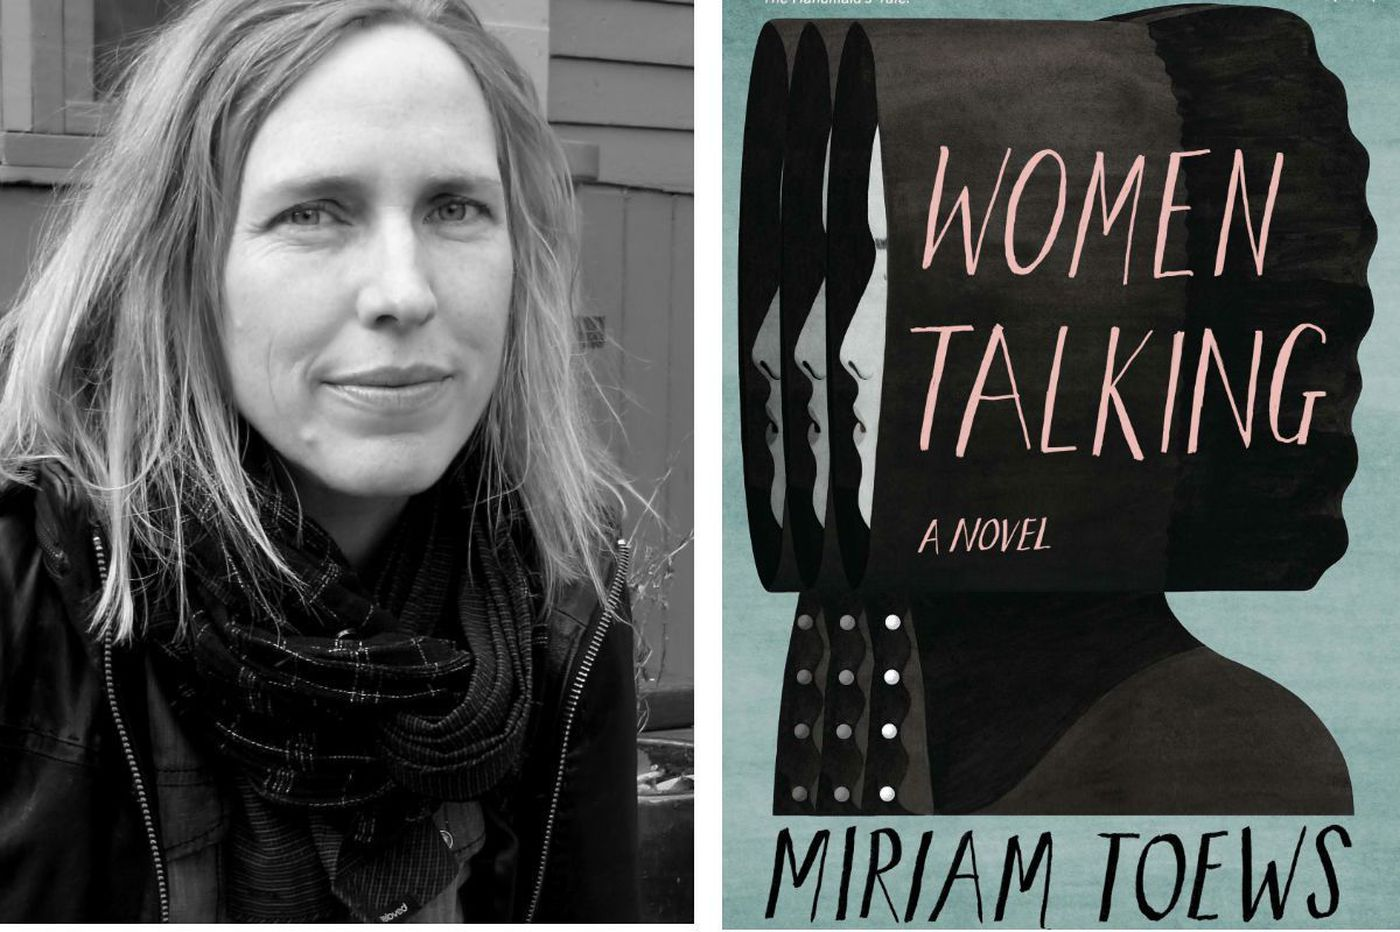 'Women Talking' by Miriam Toews: A brilliant, excruciating true-crime story in which the victims are the heroes